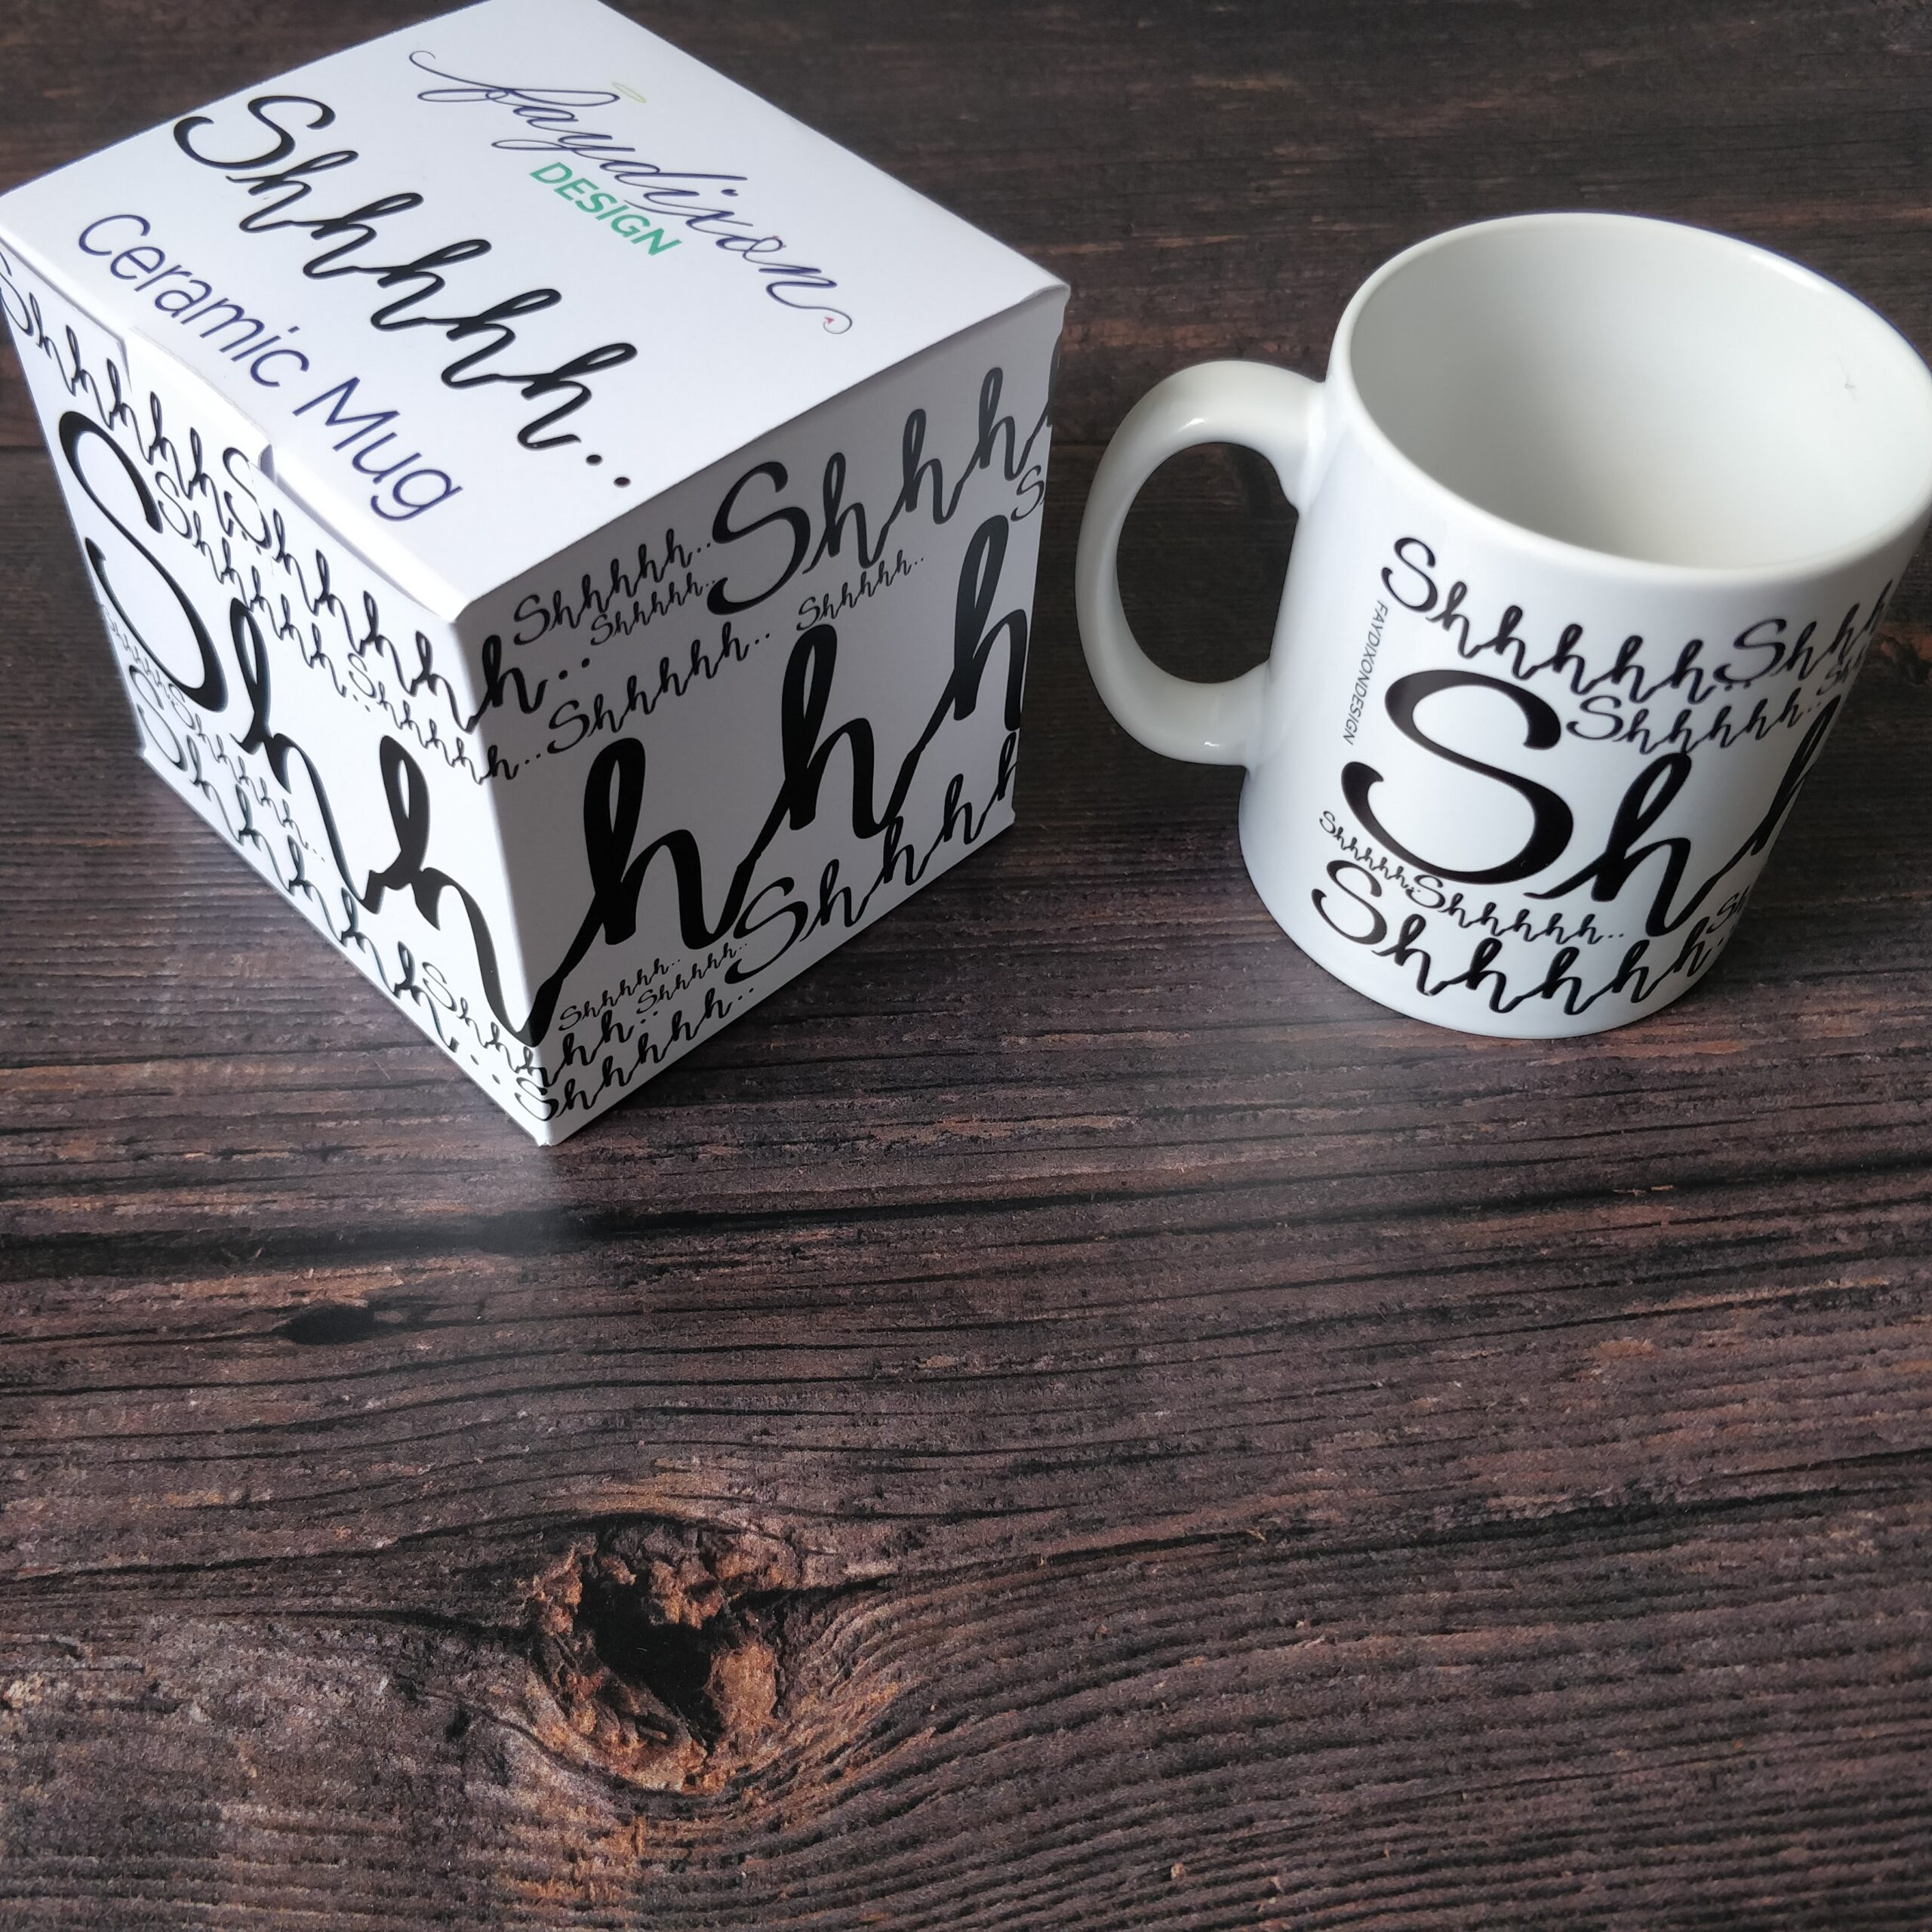 Gift for book lover - white ceramic mug featuring the word shhhhh wrapped around it by Fay Dixon Design